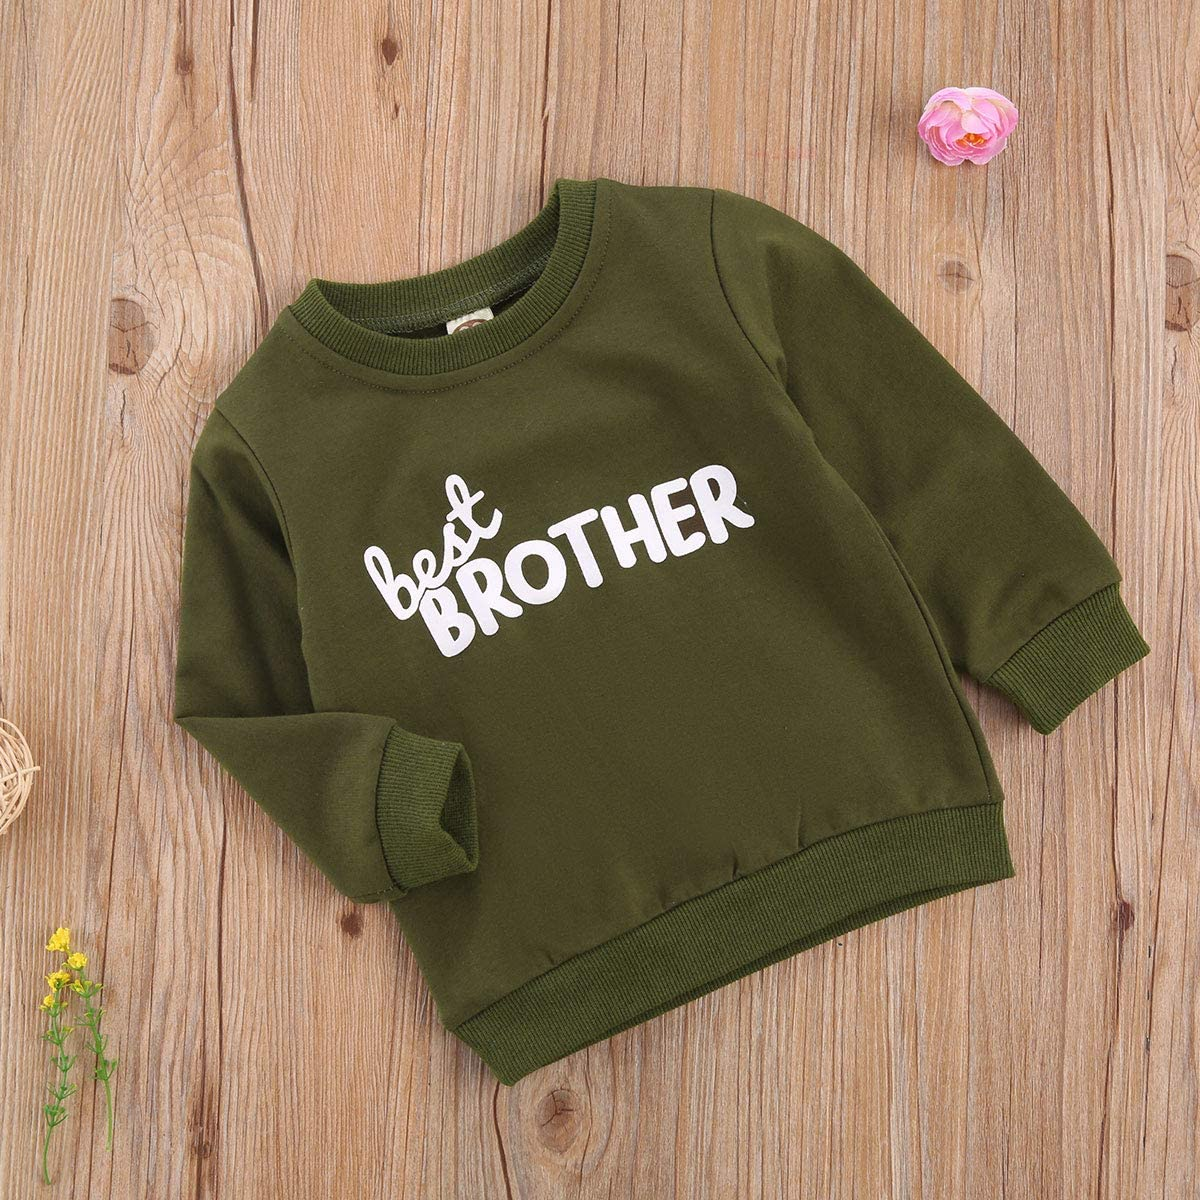 Toddler Infant Baby Girl Boy Letter Print Sweater Long Sleeve Pullover Sweatshirt Top Fall Winter Outdoor Outfit Clothes